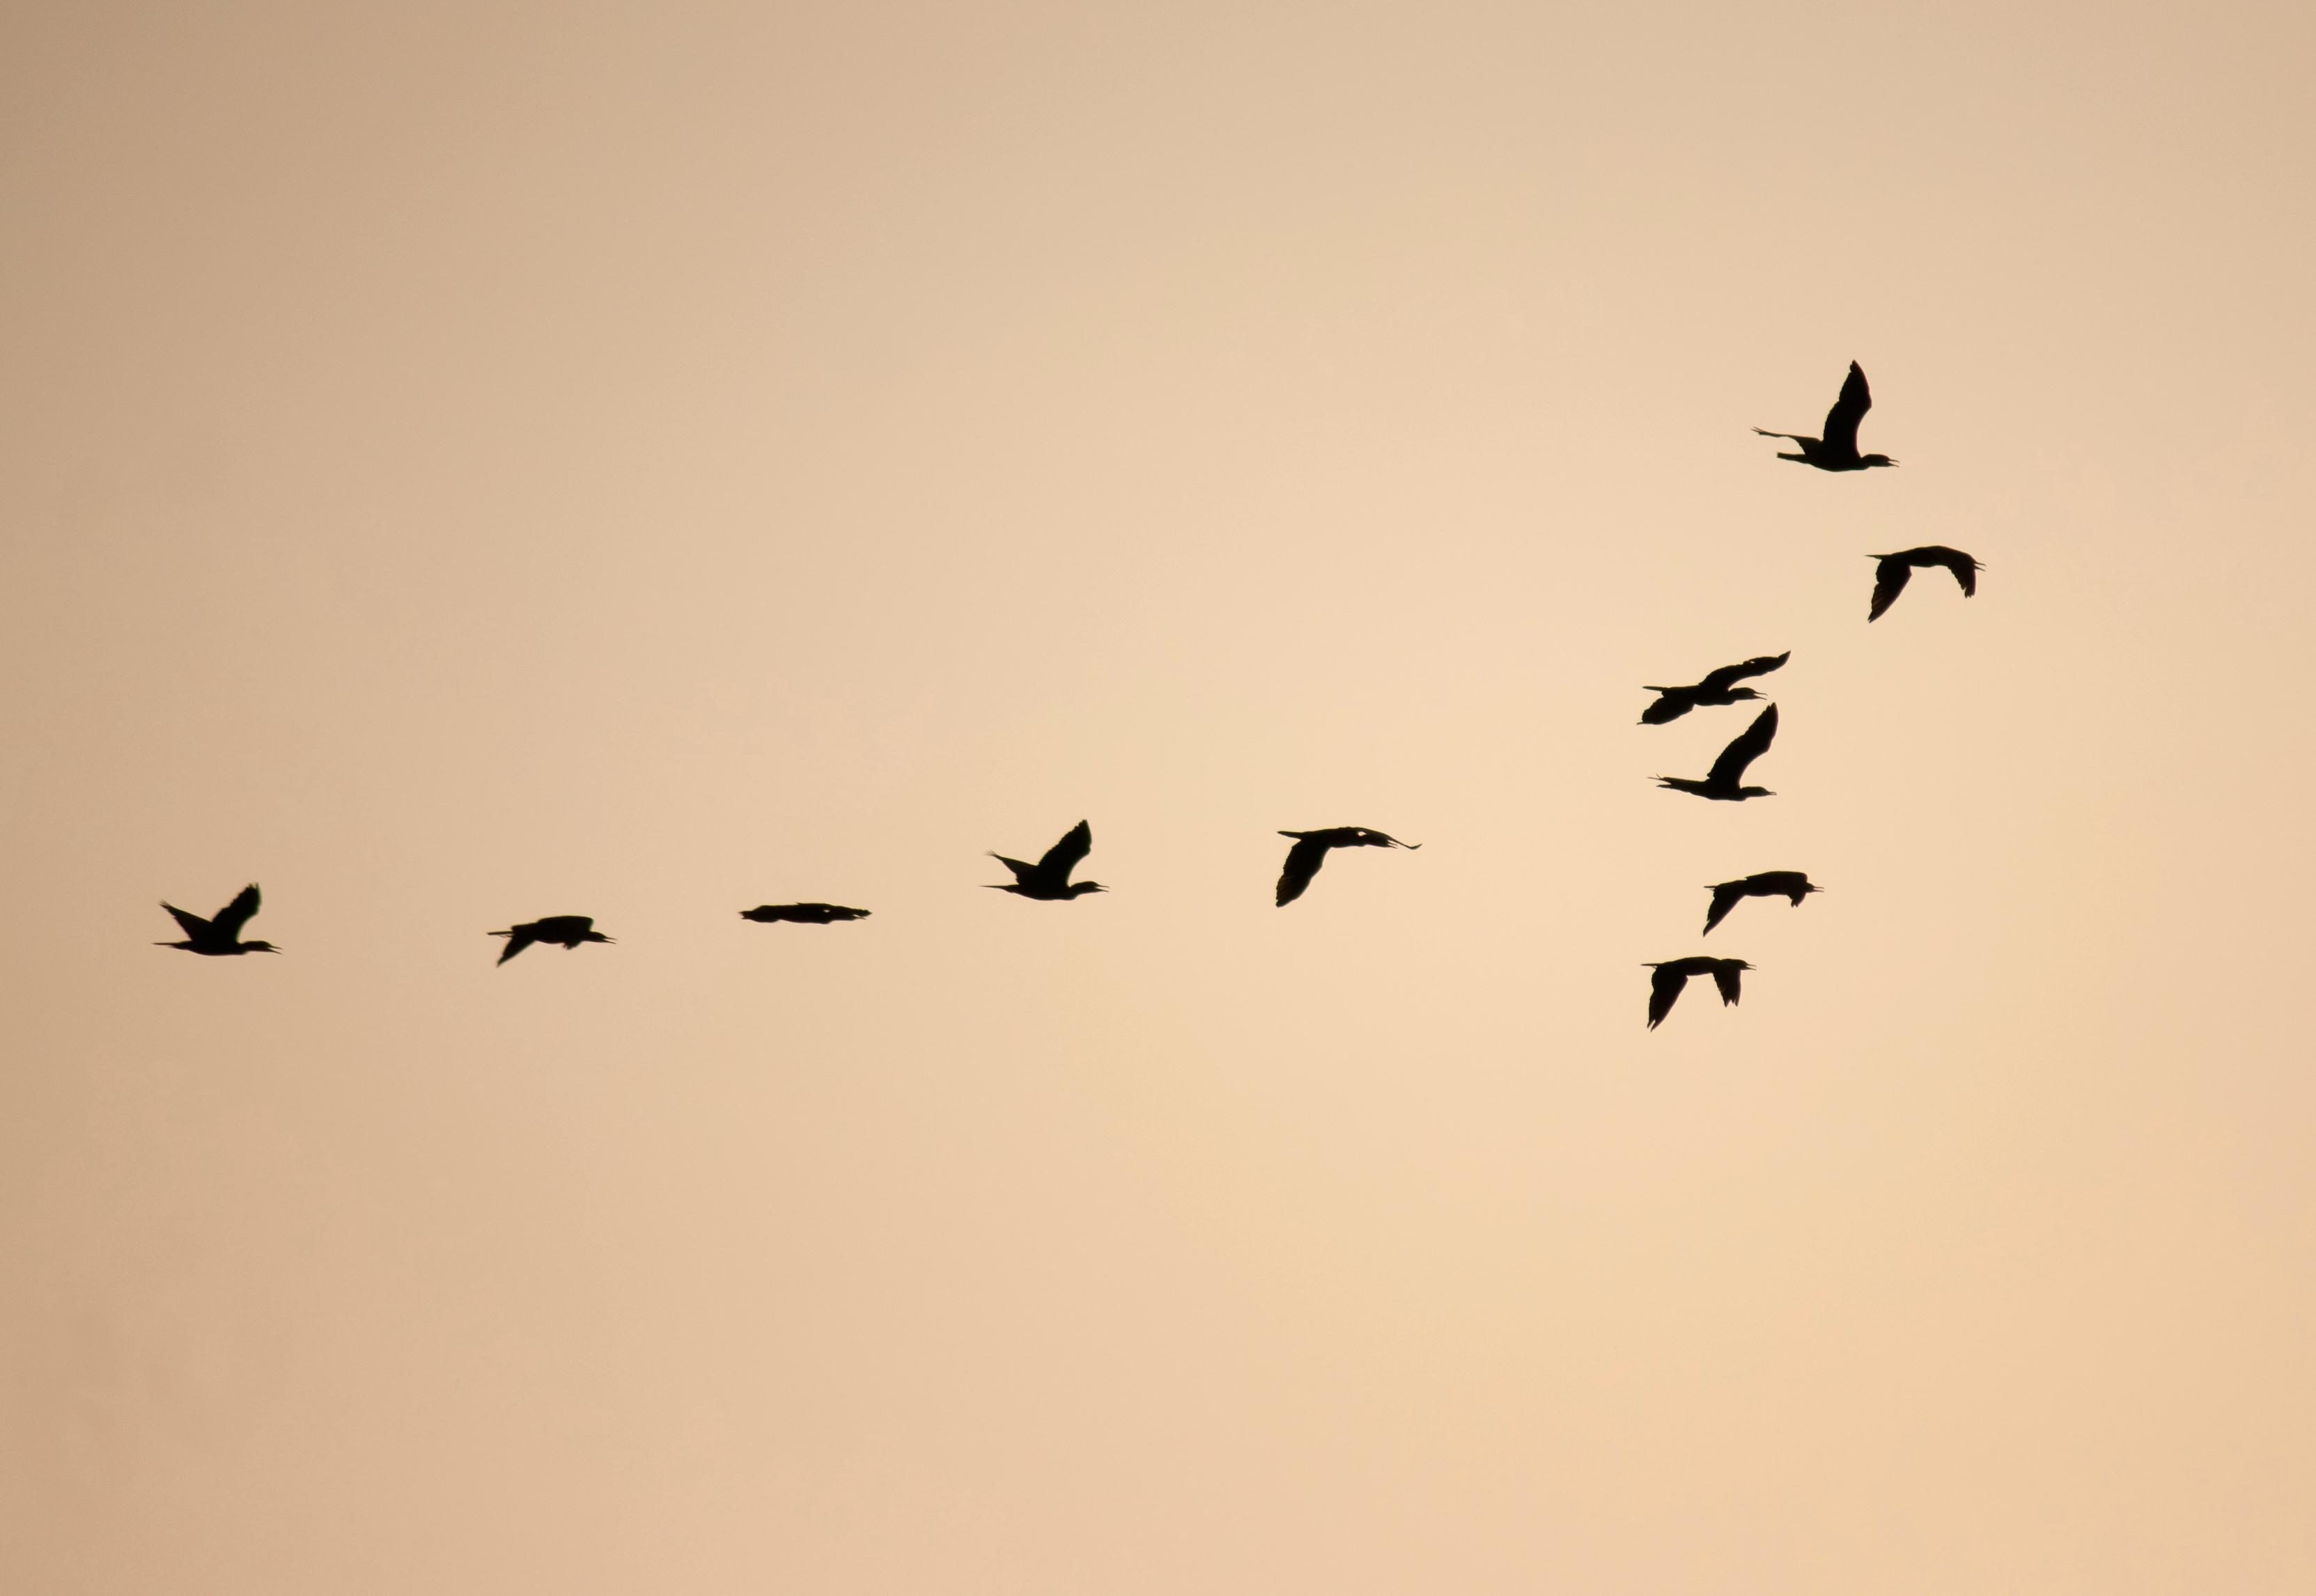 free picture  bird  flock  formation  silhouette  black